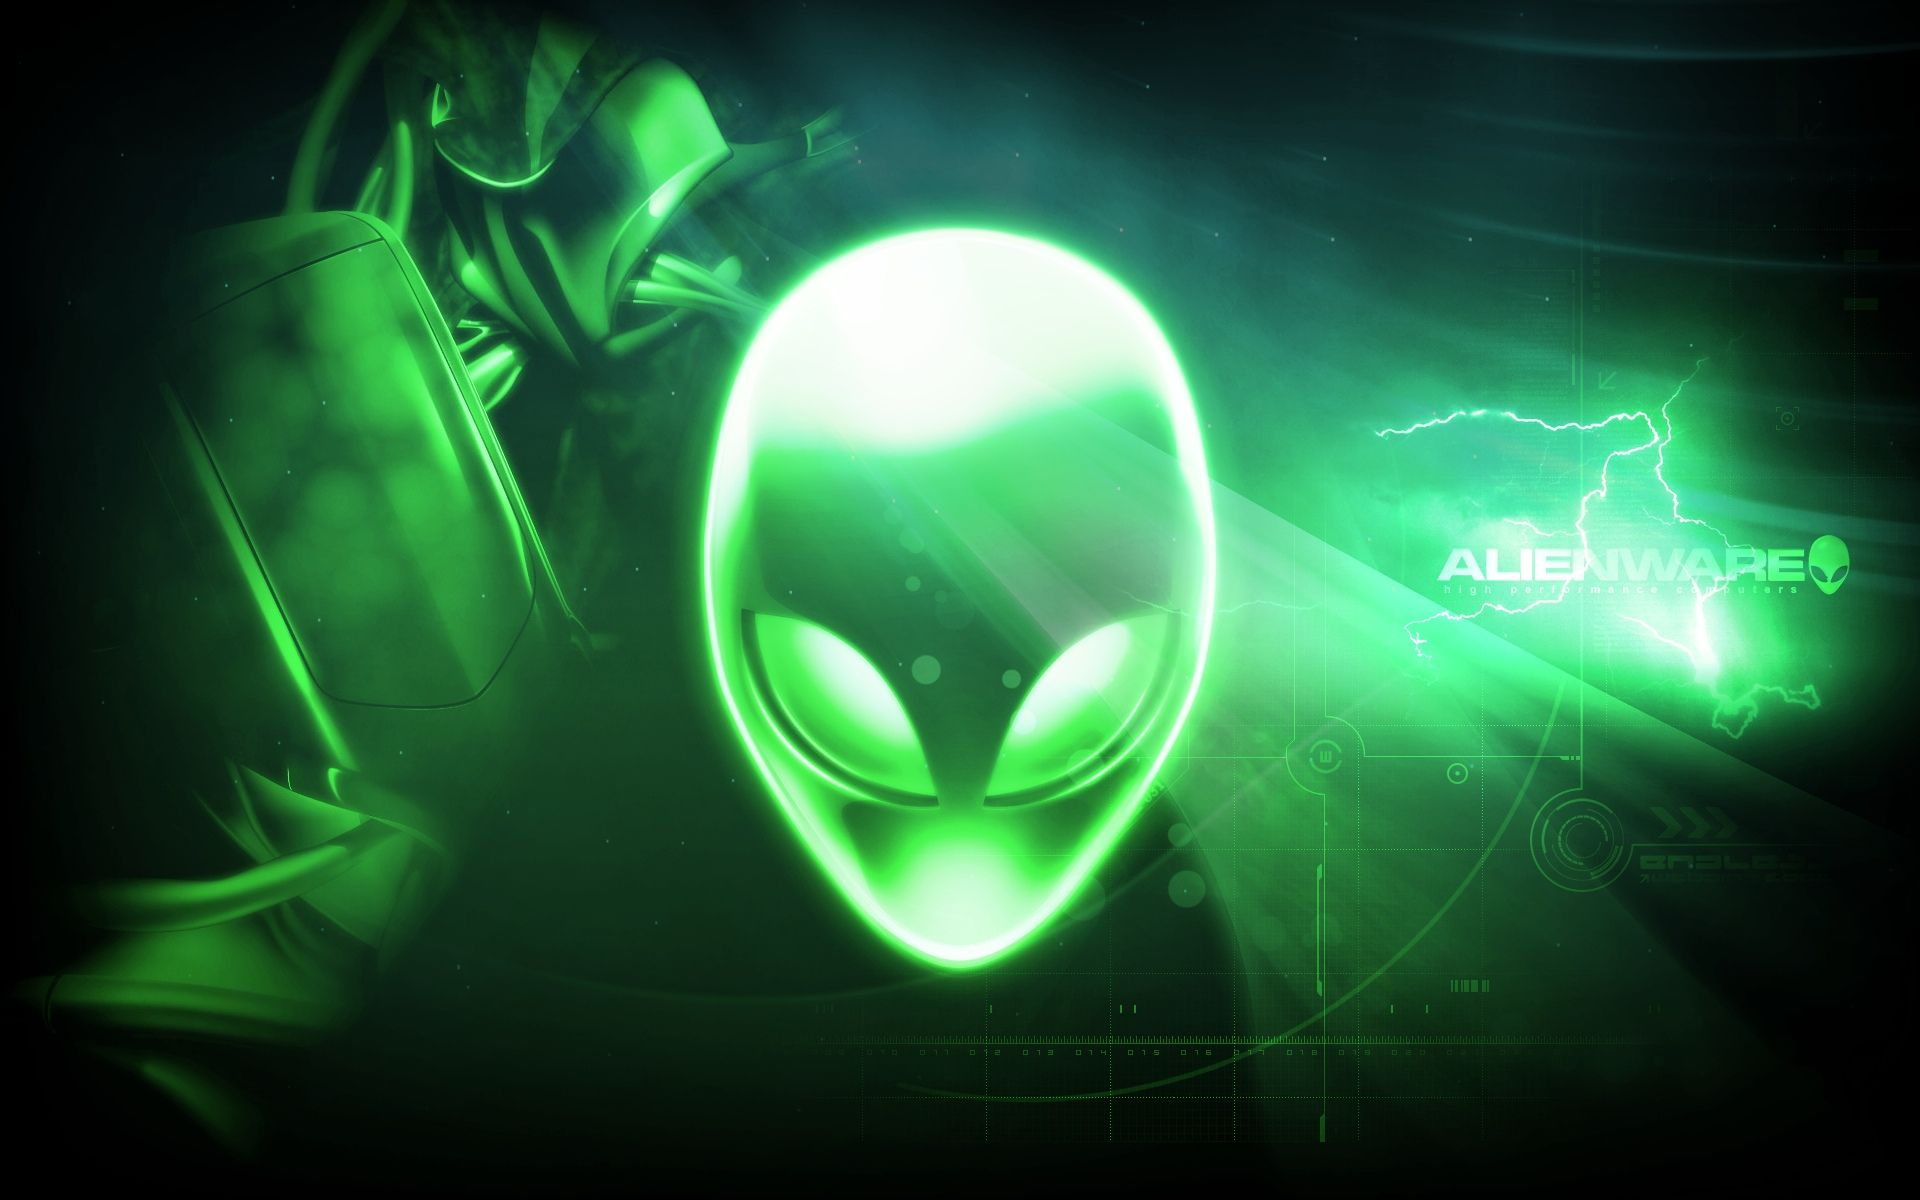 alienware picture wallpapers hd resolution wallpaper 1920x1200 px